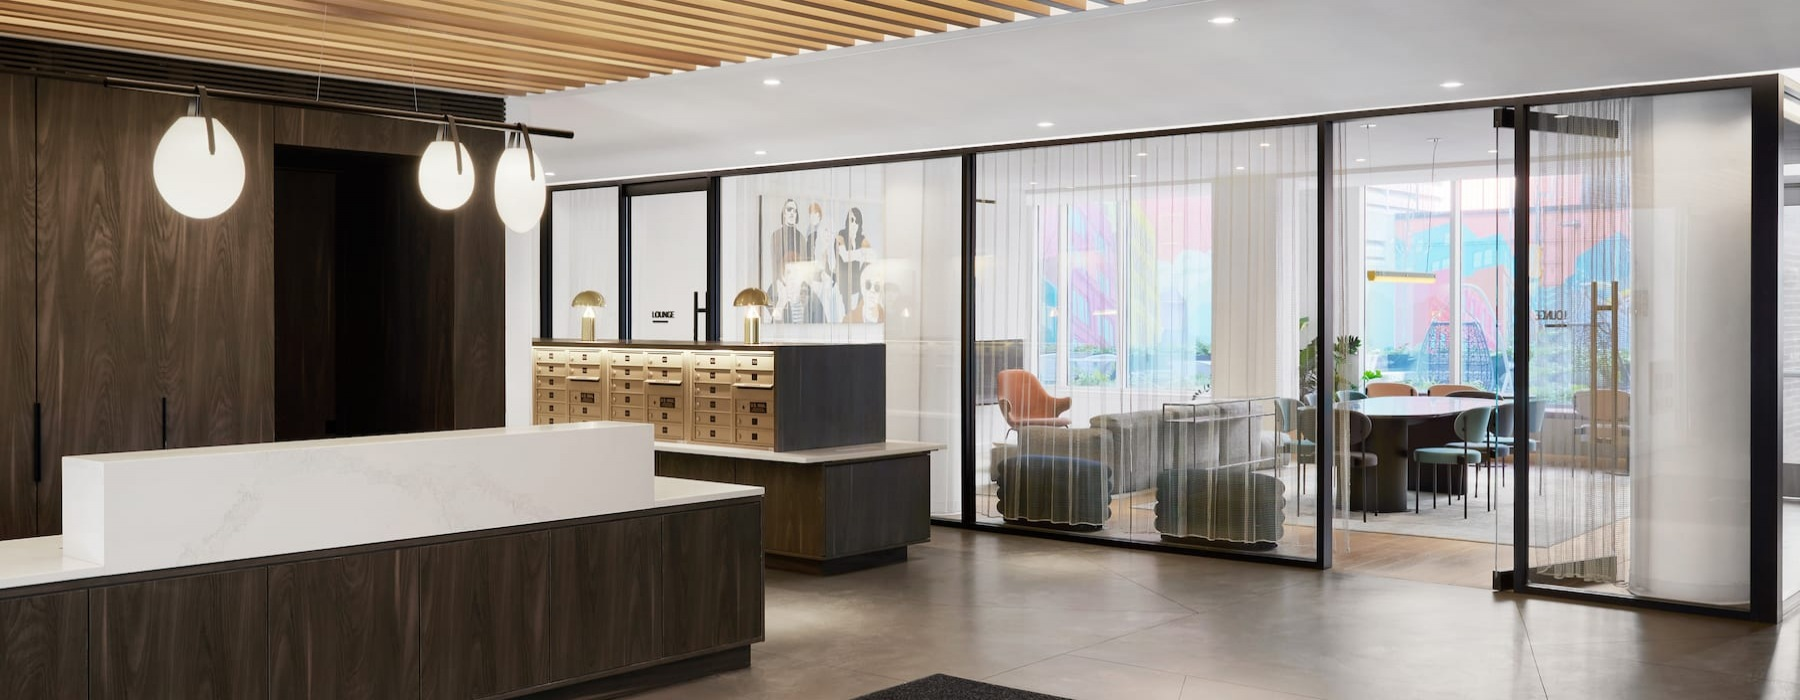 spacious lobby with seating and modern design